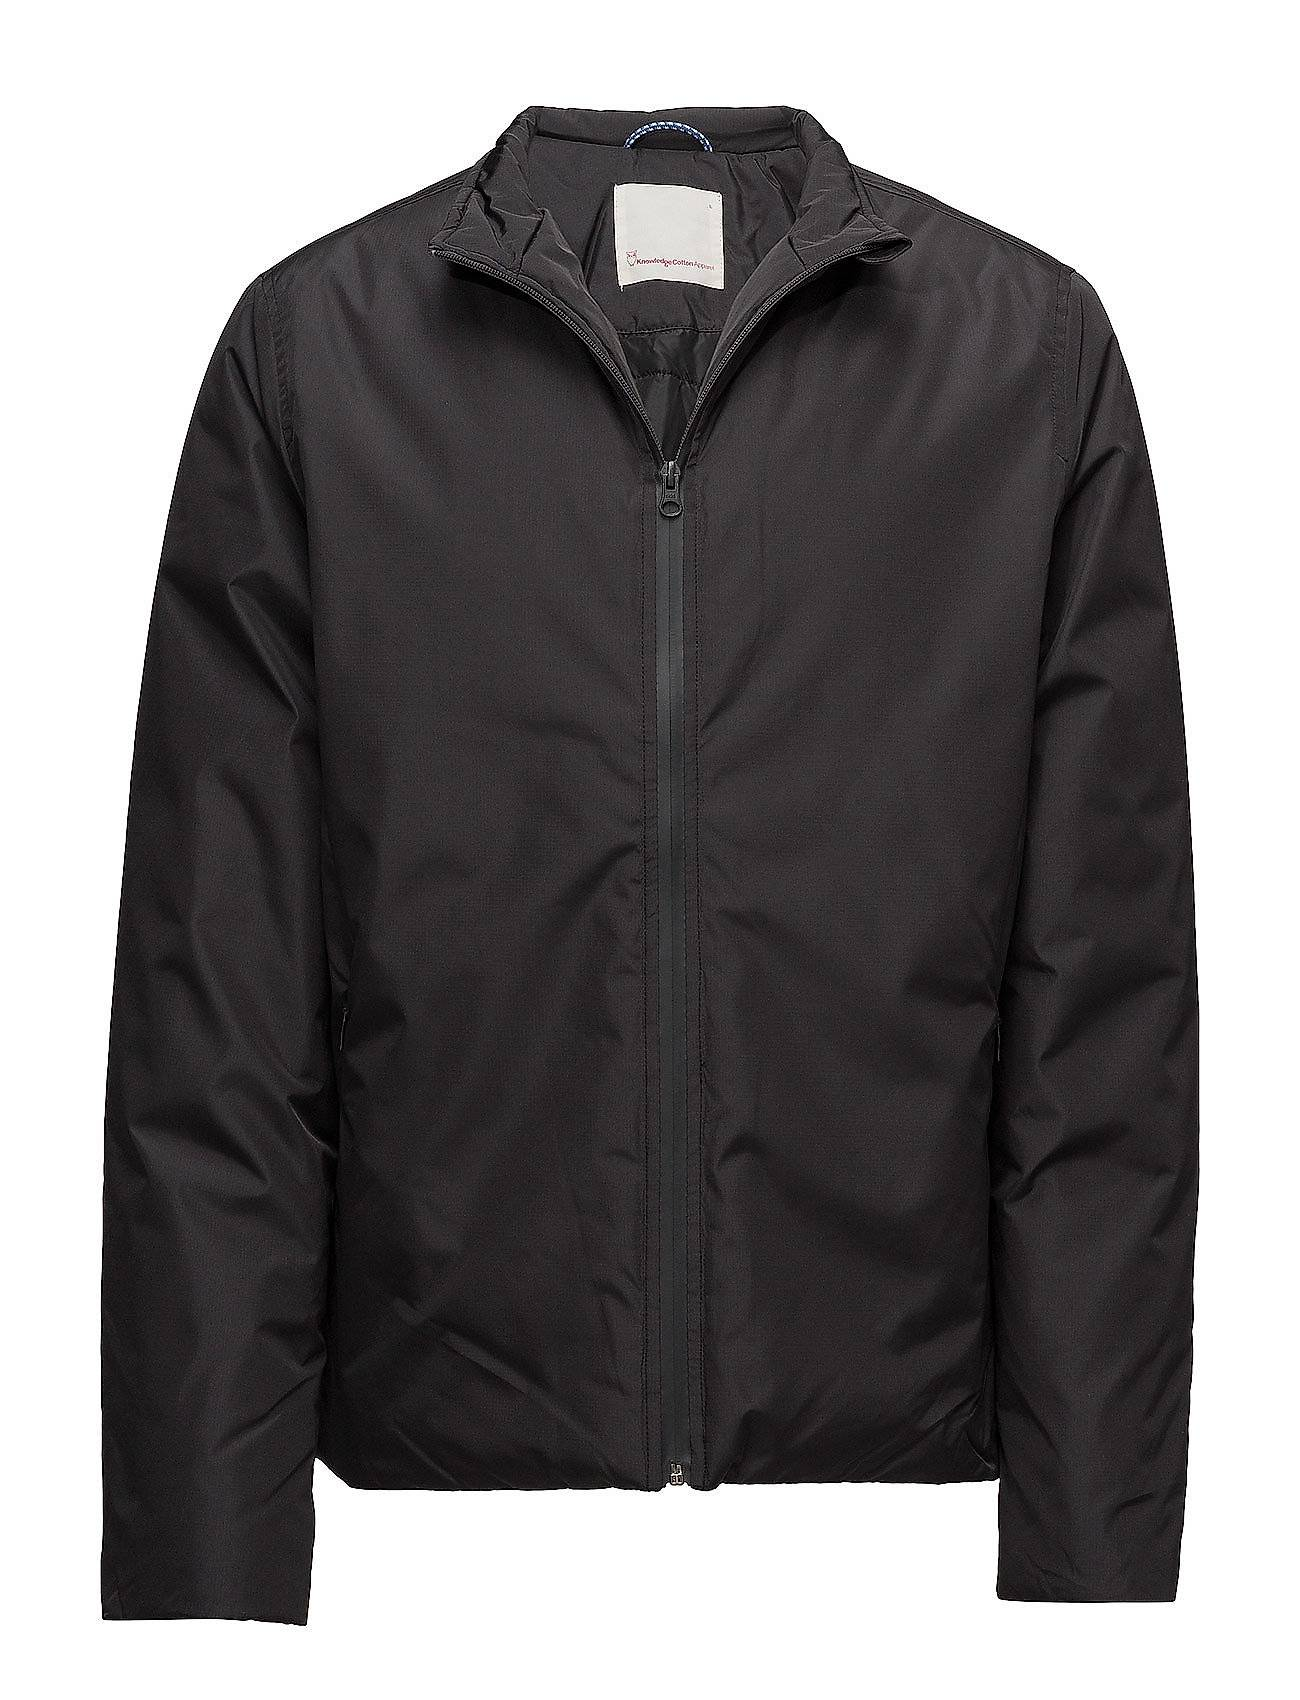 Knowledge Cotton Apparel Rib Stop Functional Jacket - Grs